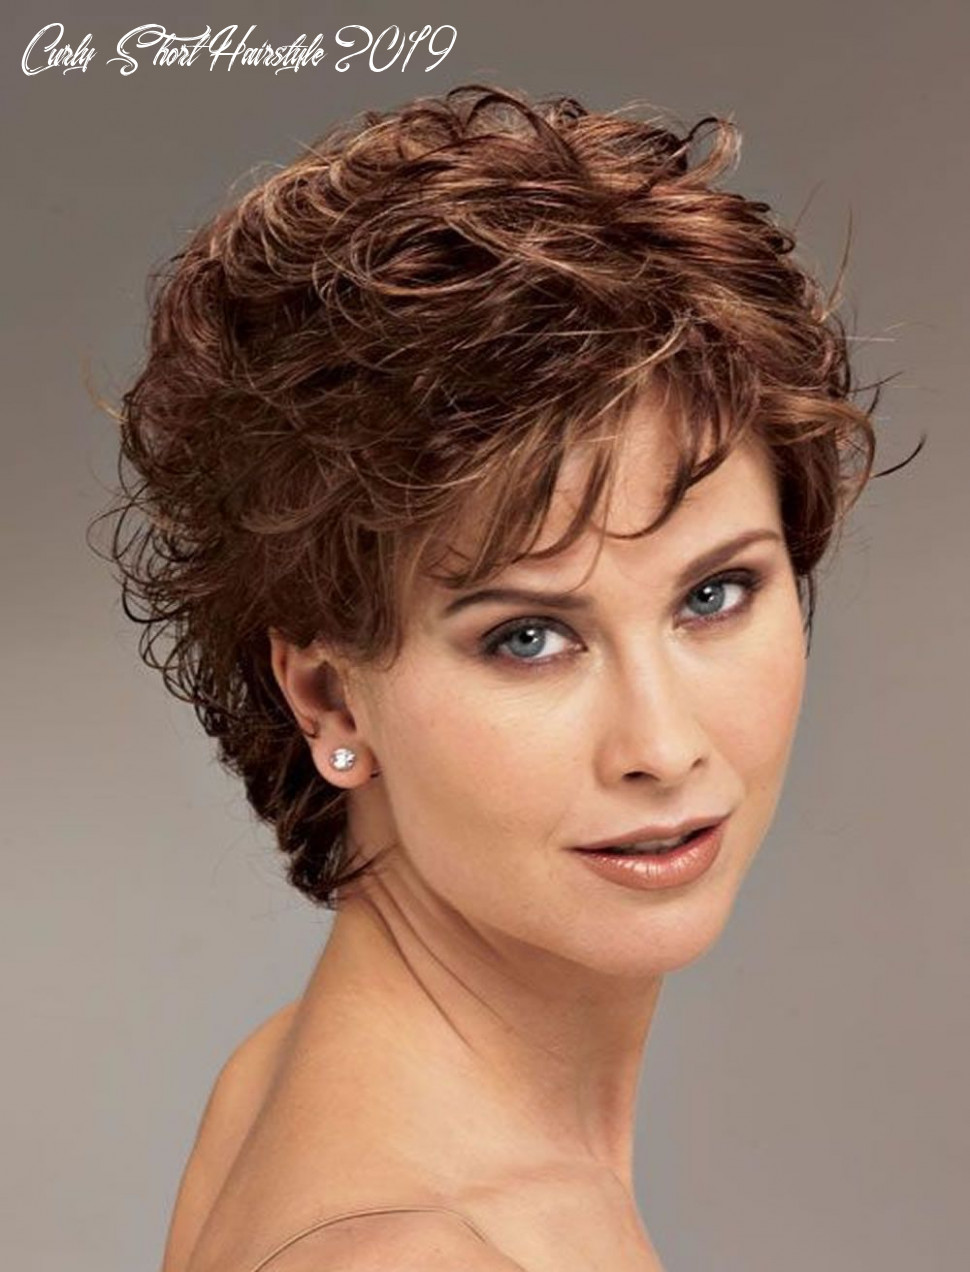 The best ideas for hairstyles 11 for women | curly hair women